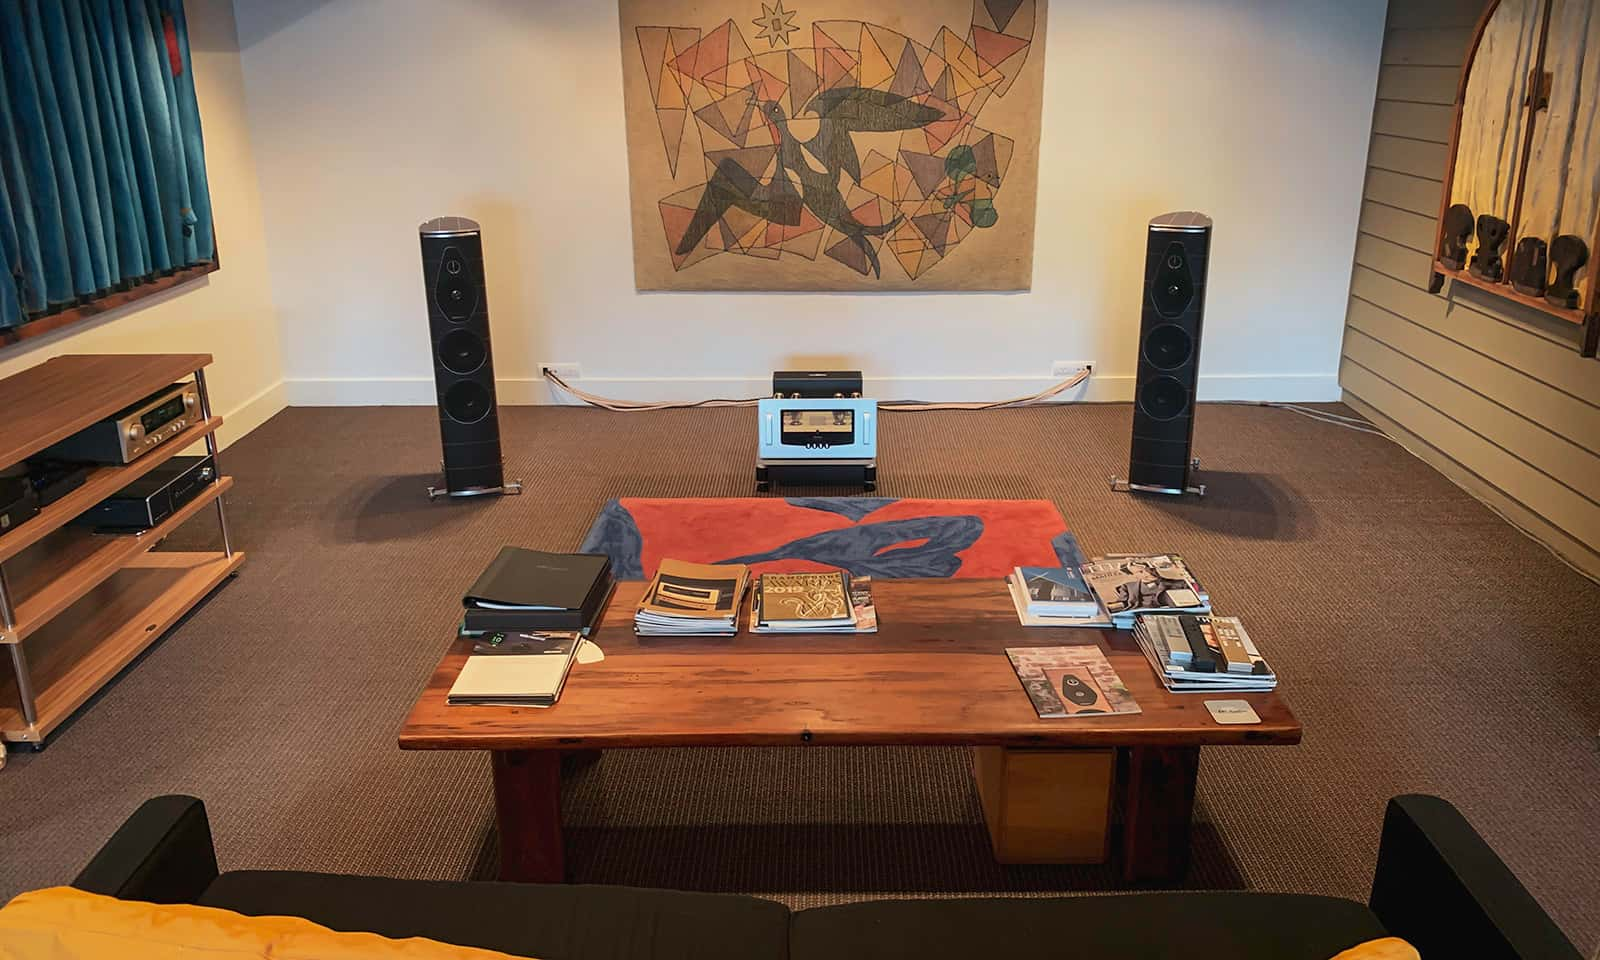 Soundline Christchurch supplies audio equipment, speakers, turntables, amplifiers, home theatre gear. Soundline also provides installation of home audio, home automation and home theatre systems.